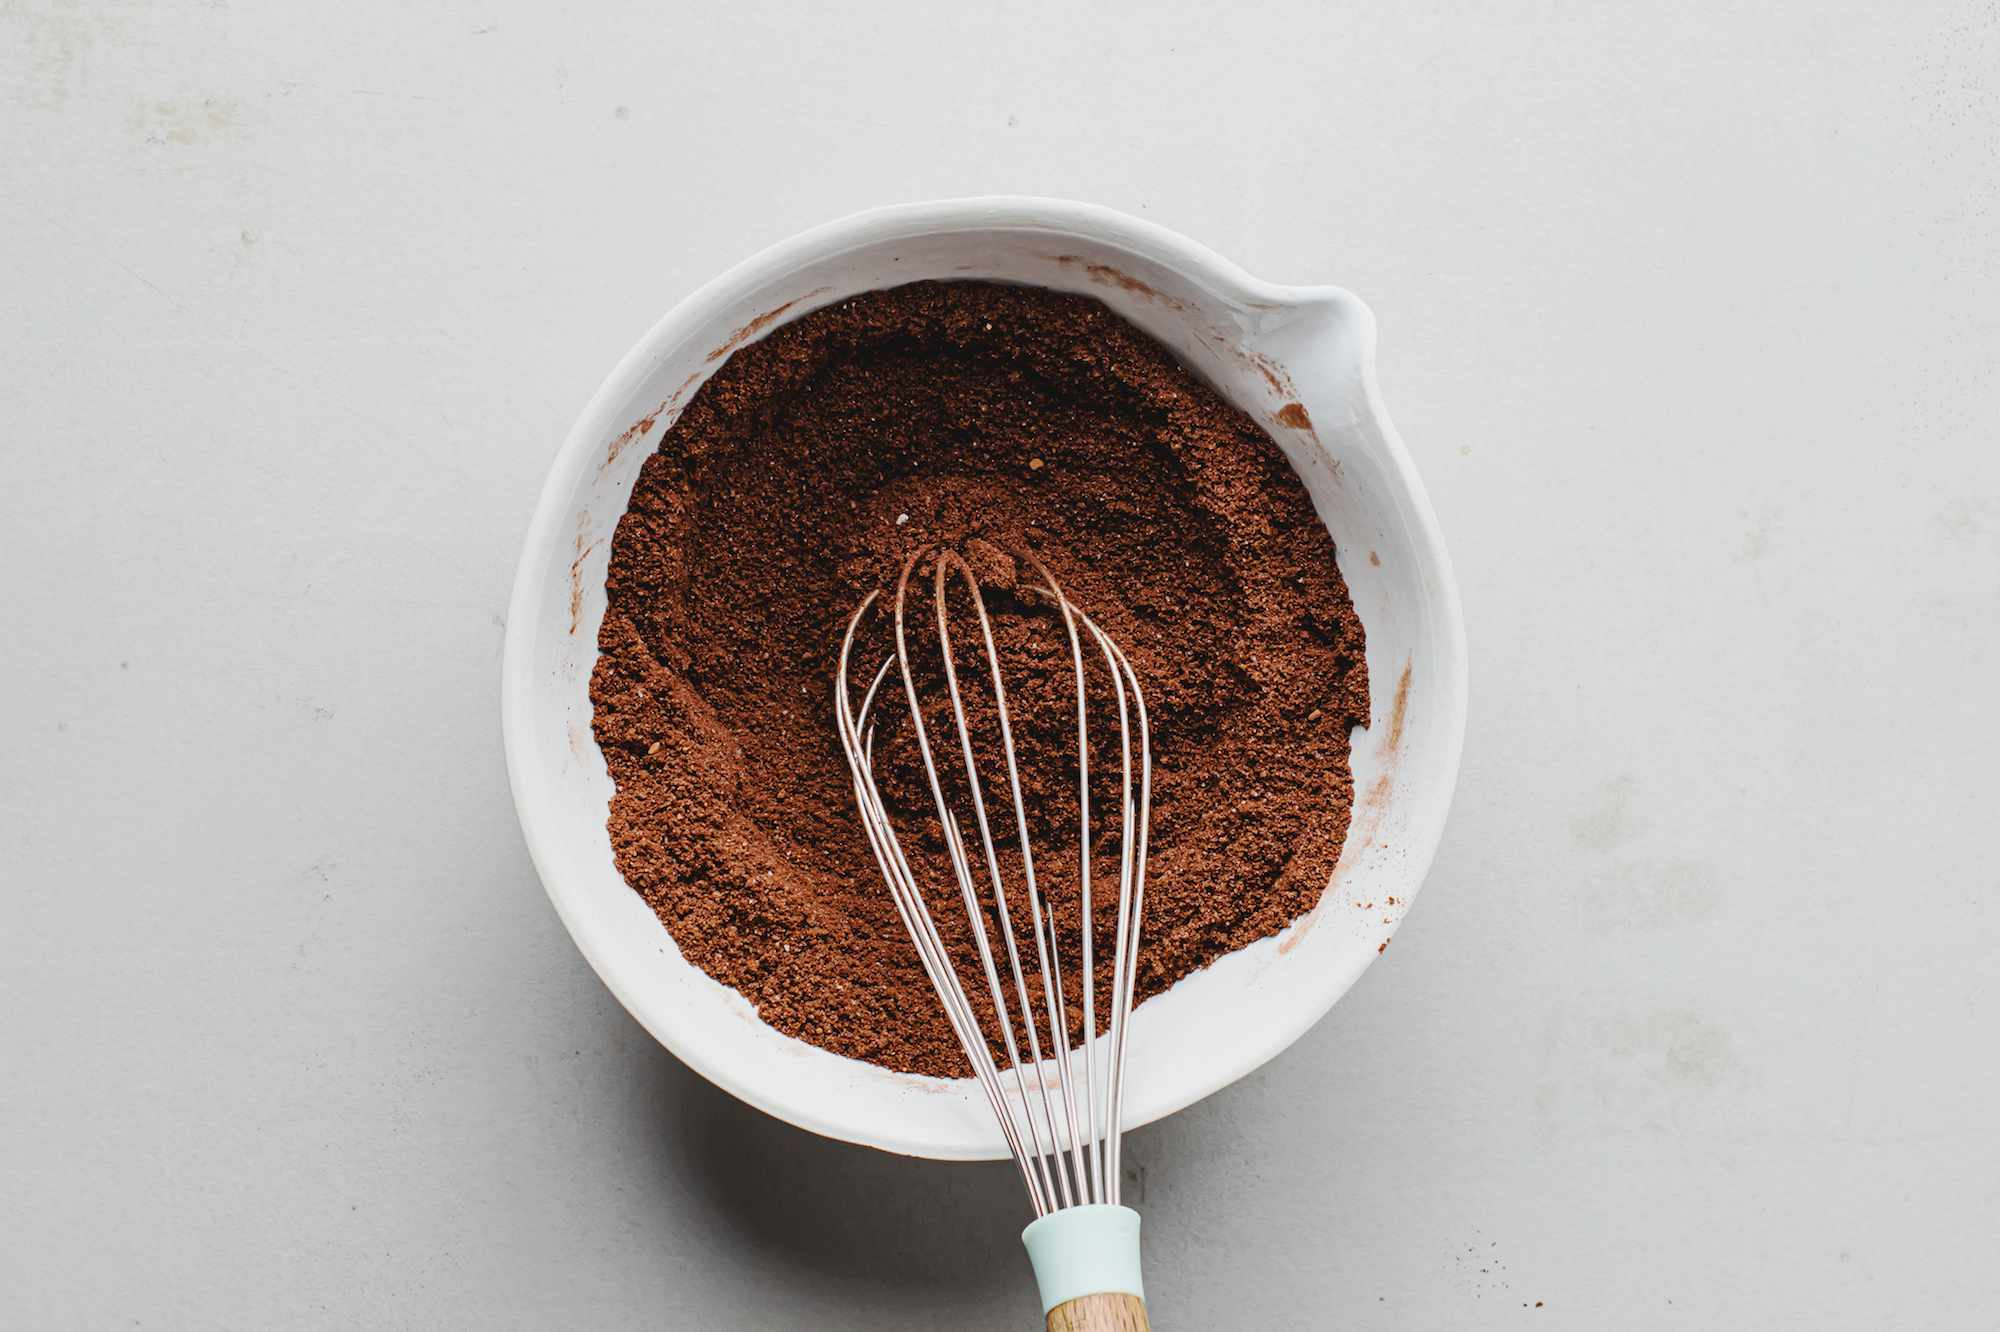 Whisking cocoa powder and other dry ingredients